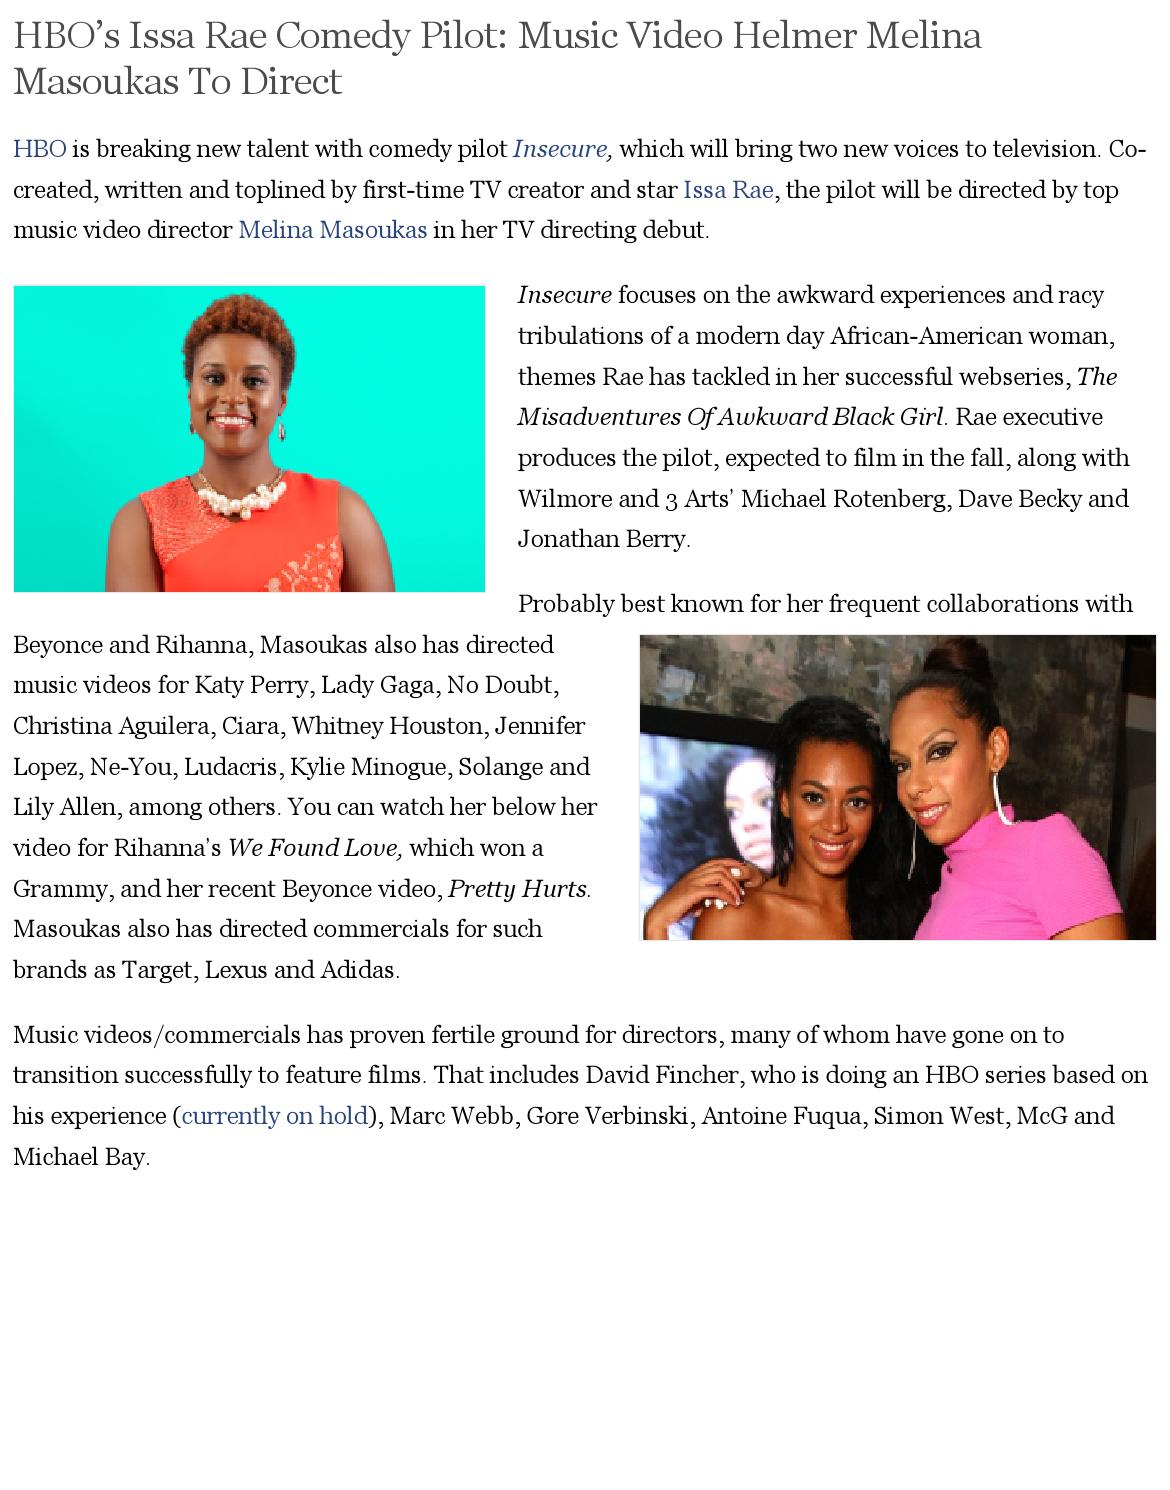 Hbo's issa rae comedy pilot music video helmer melina